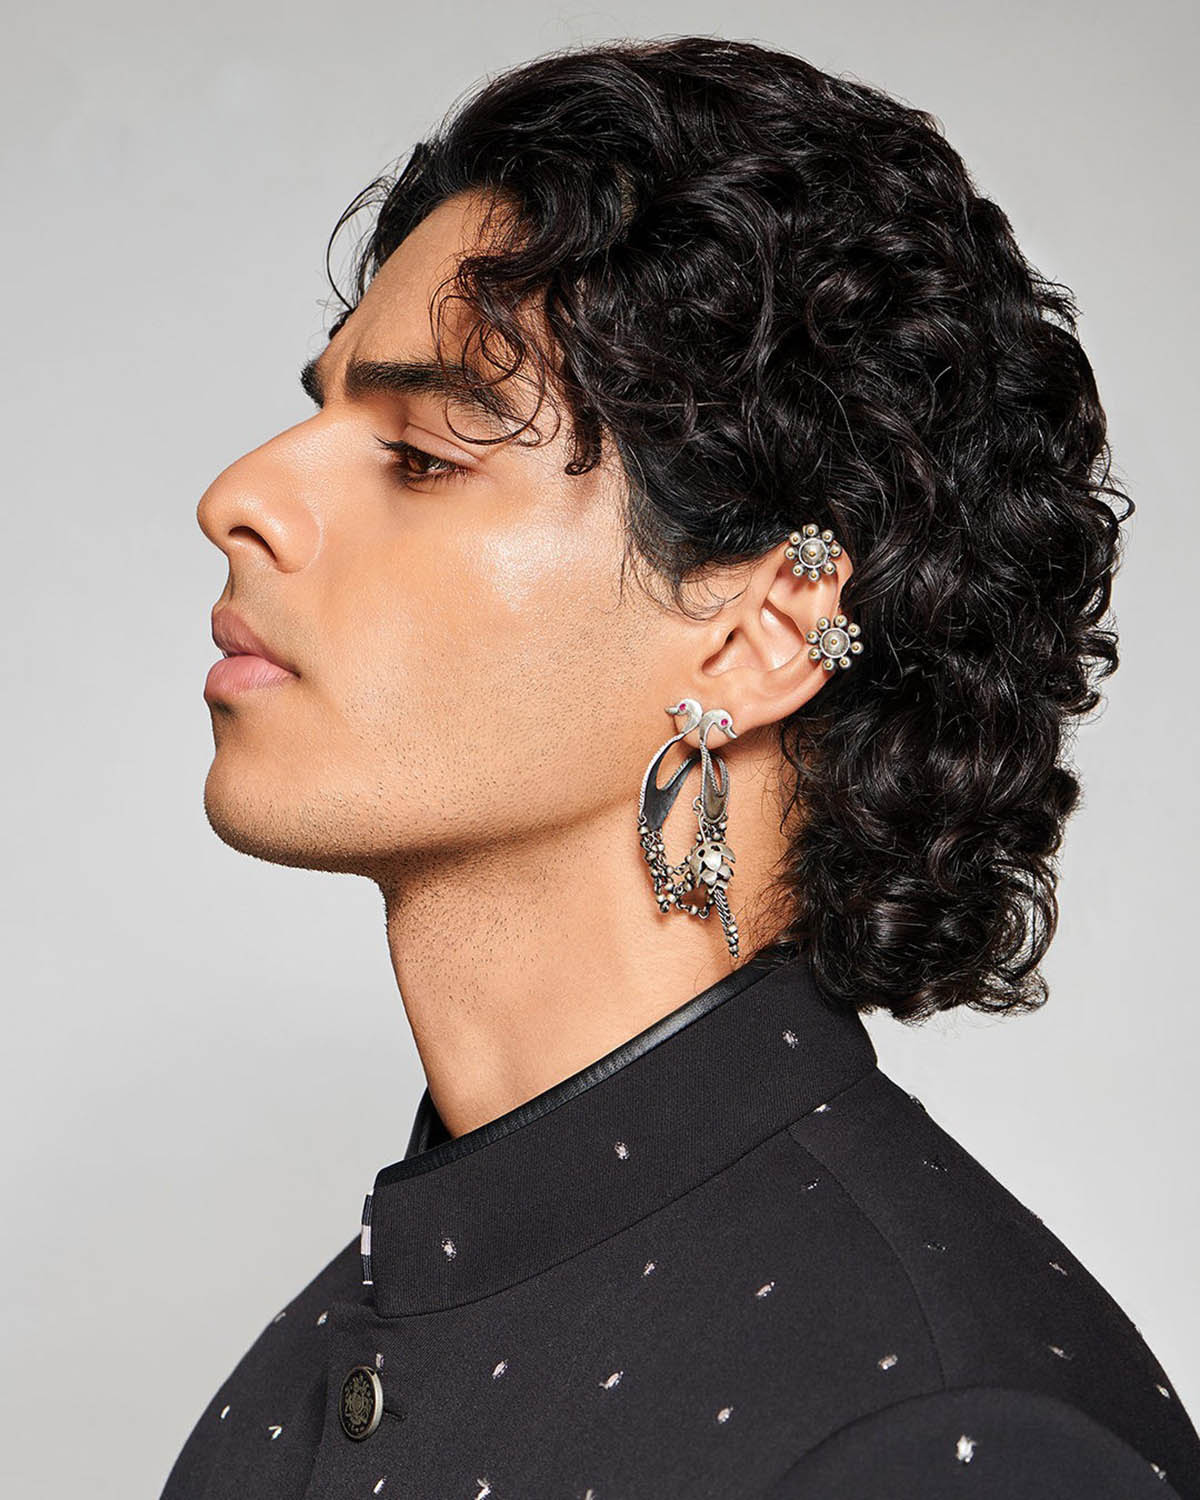 Ishaan Khatter covers GQ India March 2021 by The House of Pixels